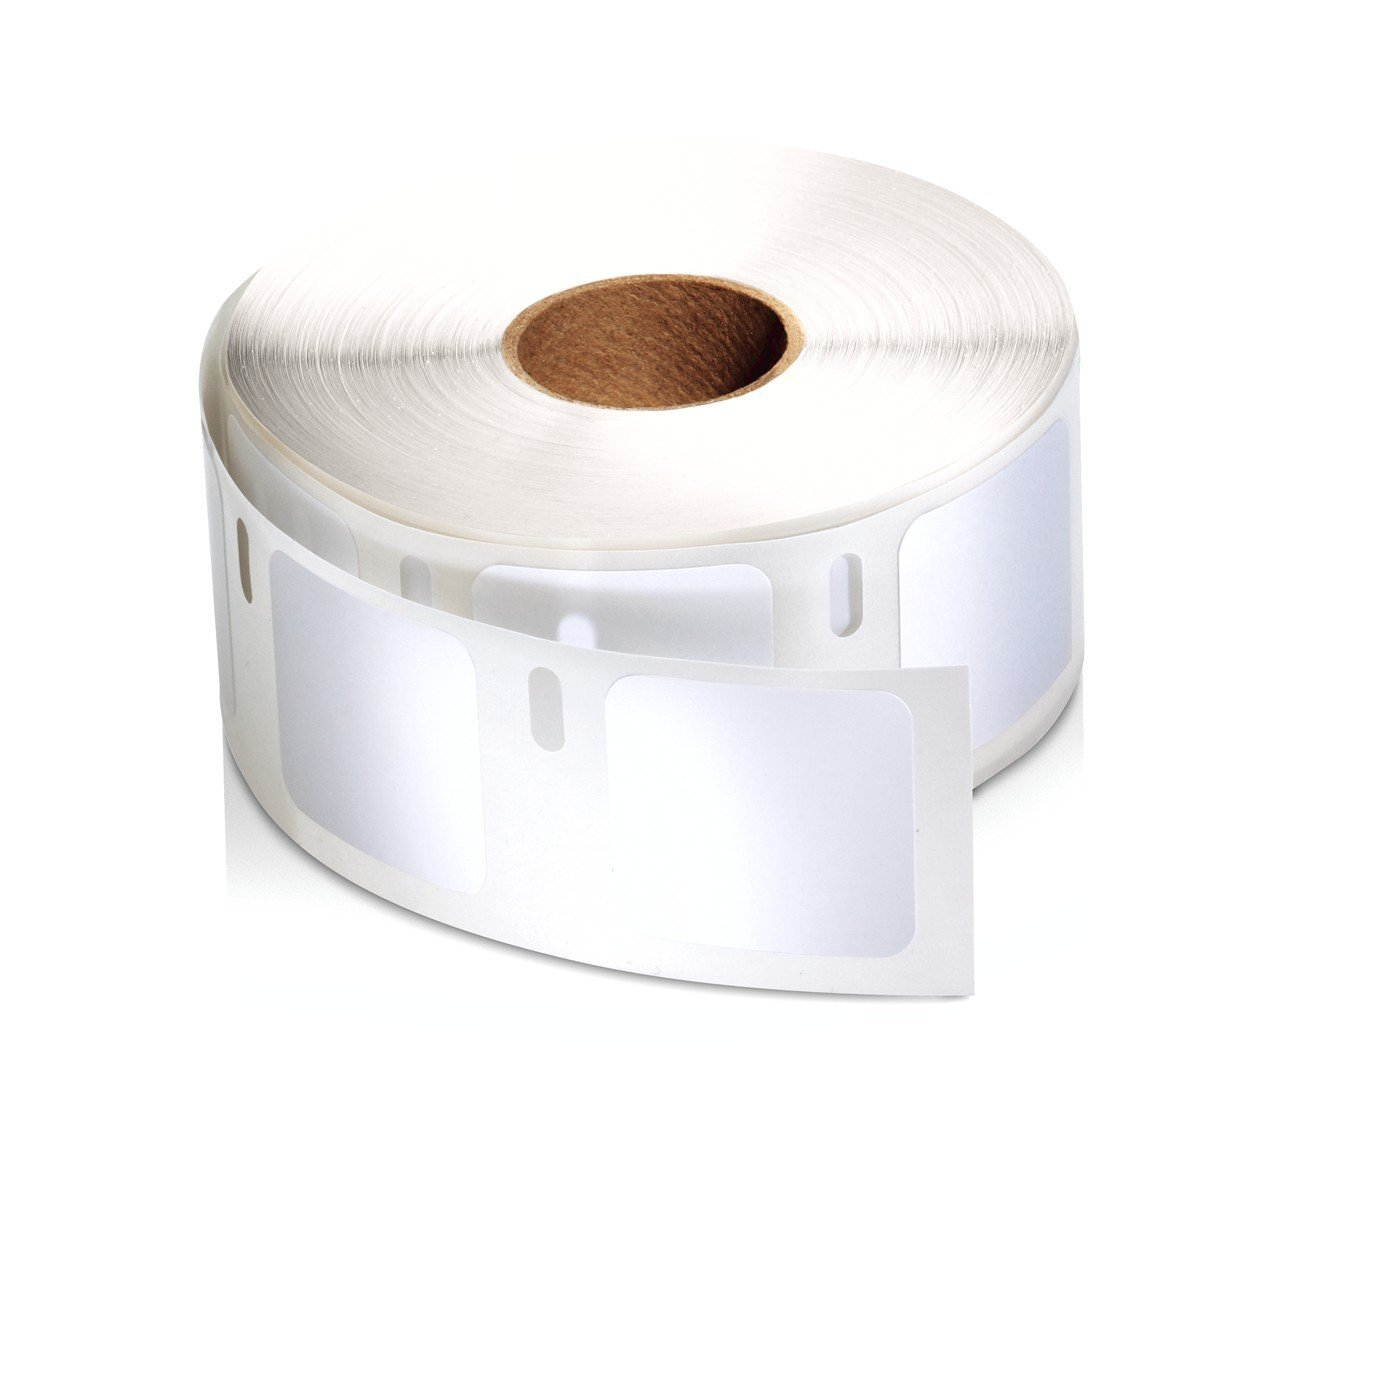 "Dymo Compatible 30332 Small Multi Purpose Labels - 1"" x 1"", 1000 Labels Per Roll"